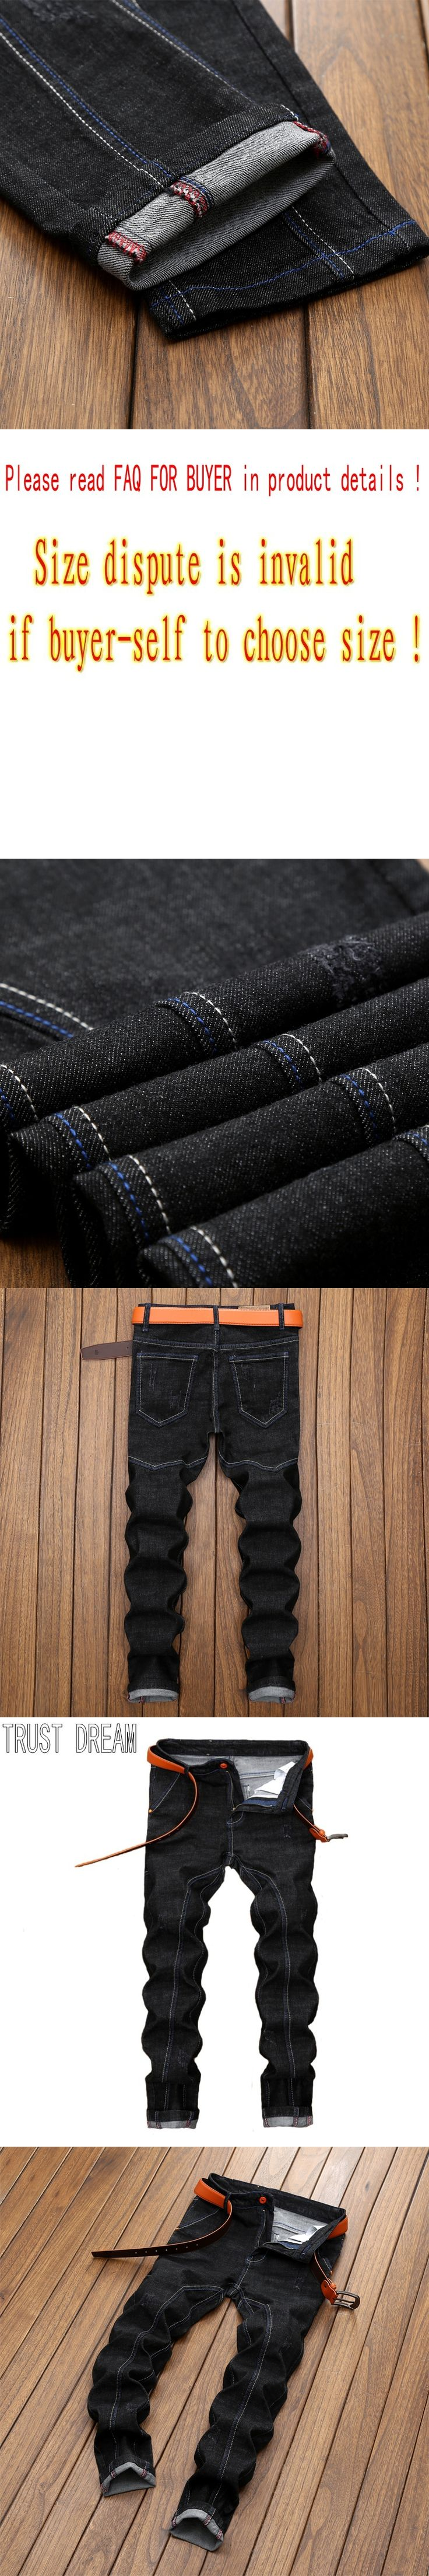 TRUST DREAM Europeans Style Men Slim Spliced Black Jean Casual Man Fashion Street Personal Cargo Cotton Jeans